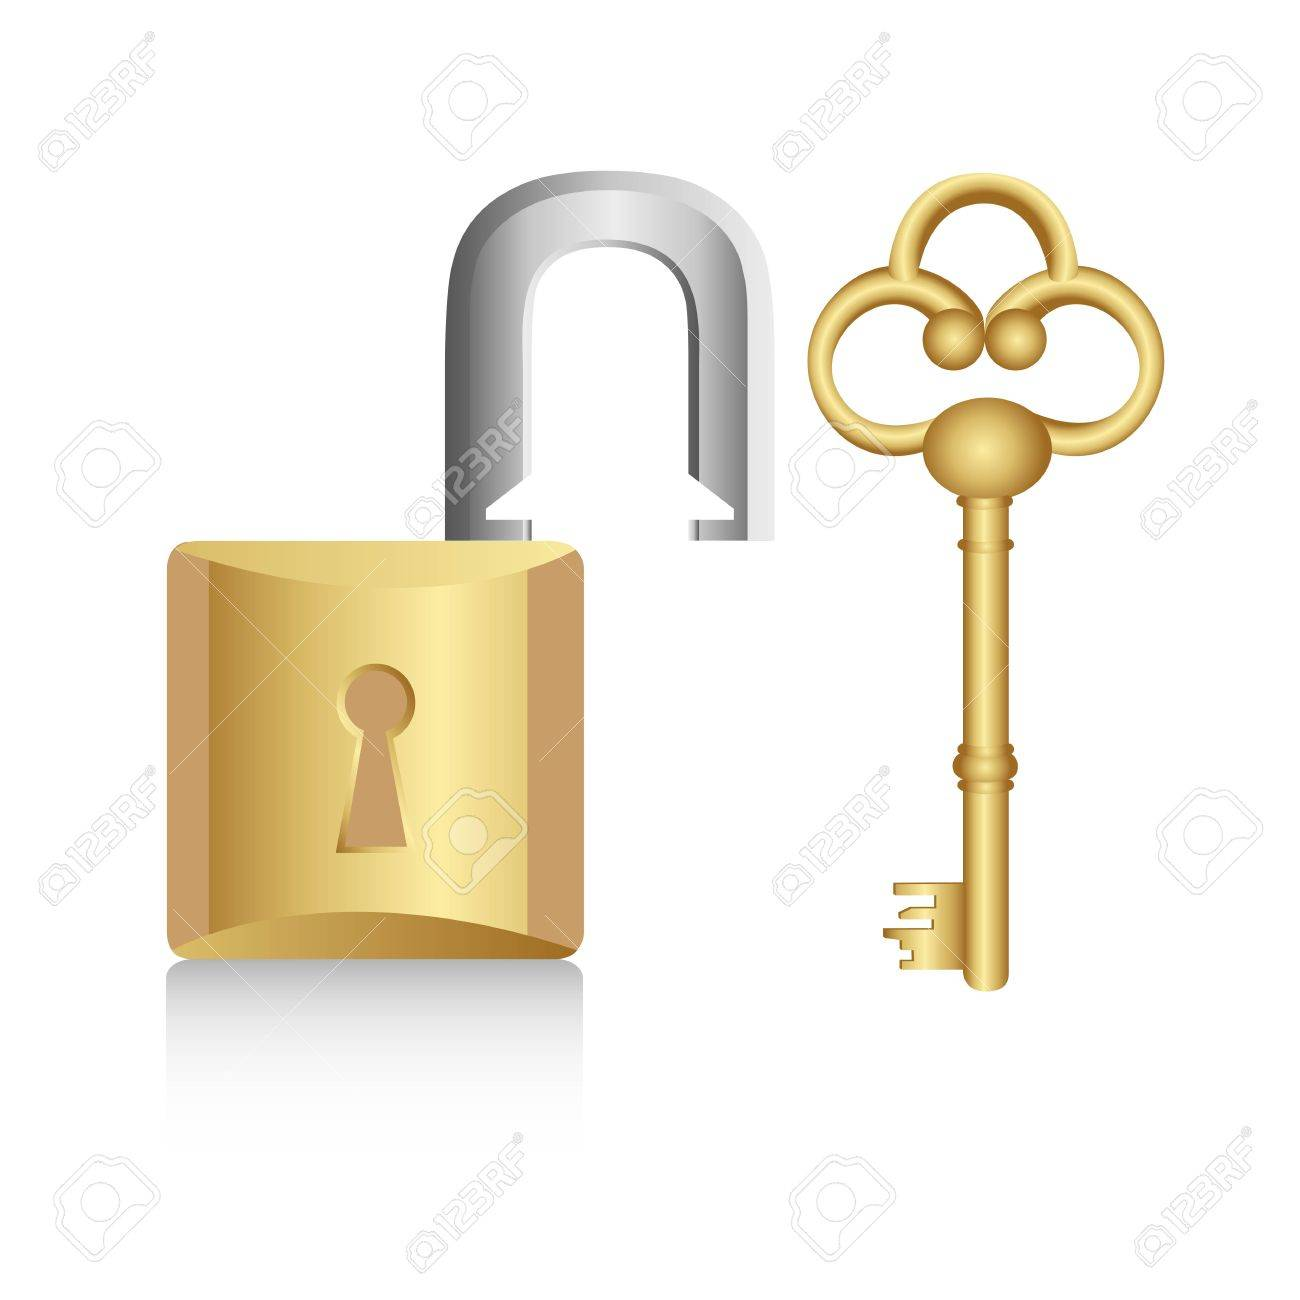 old golden key with gold lock isolated on white background Stock Vector - 13447032